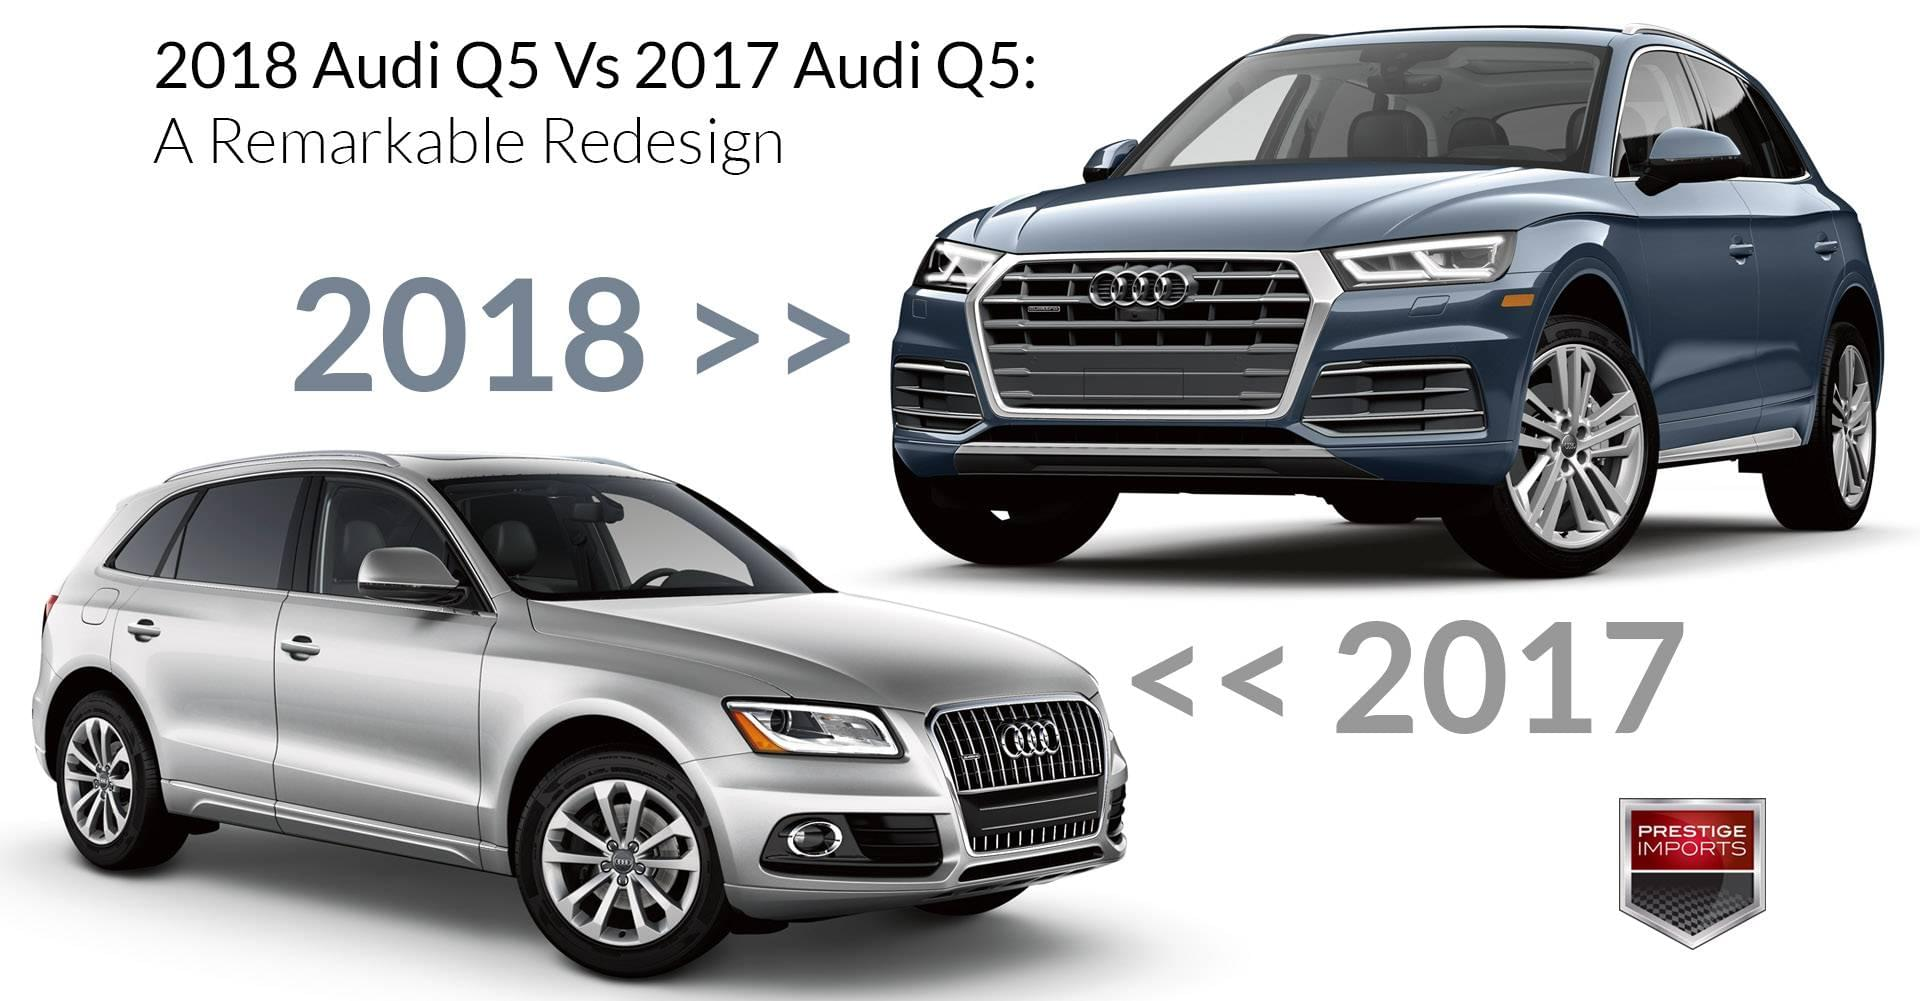 2015 Audi Q5 >> 2018 Audi Q5 Vs 2017 Audi Q5: A Remarkable Redesign